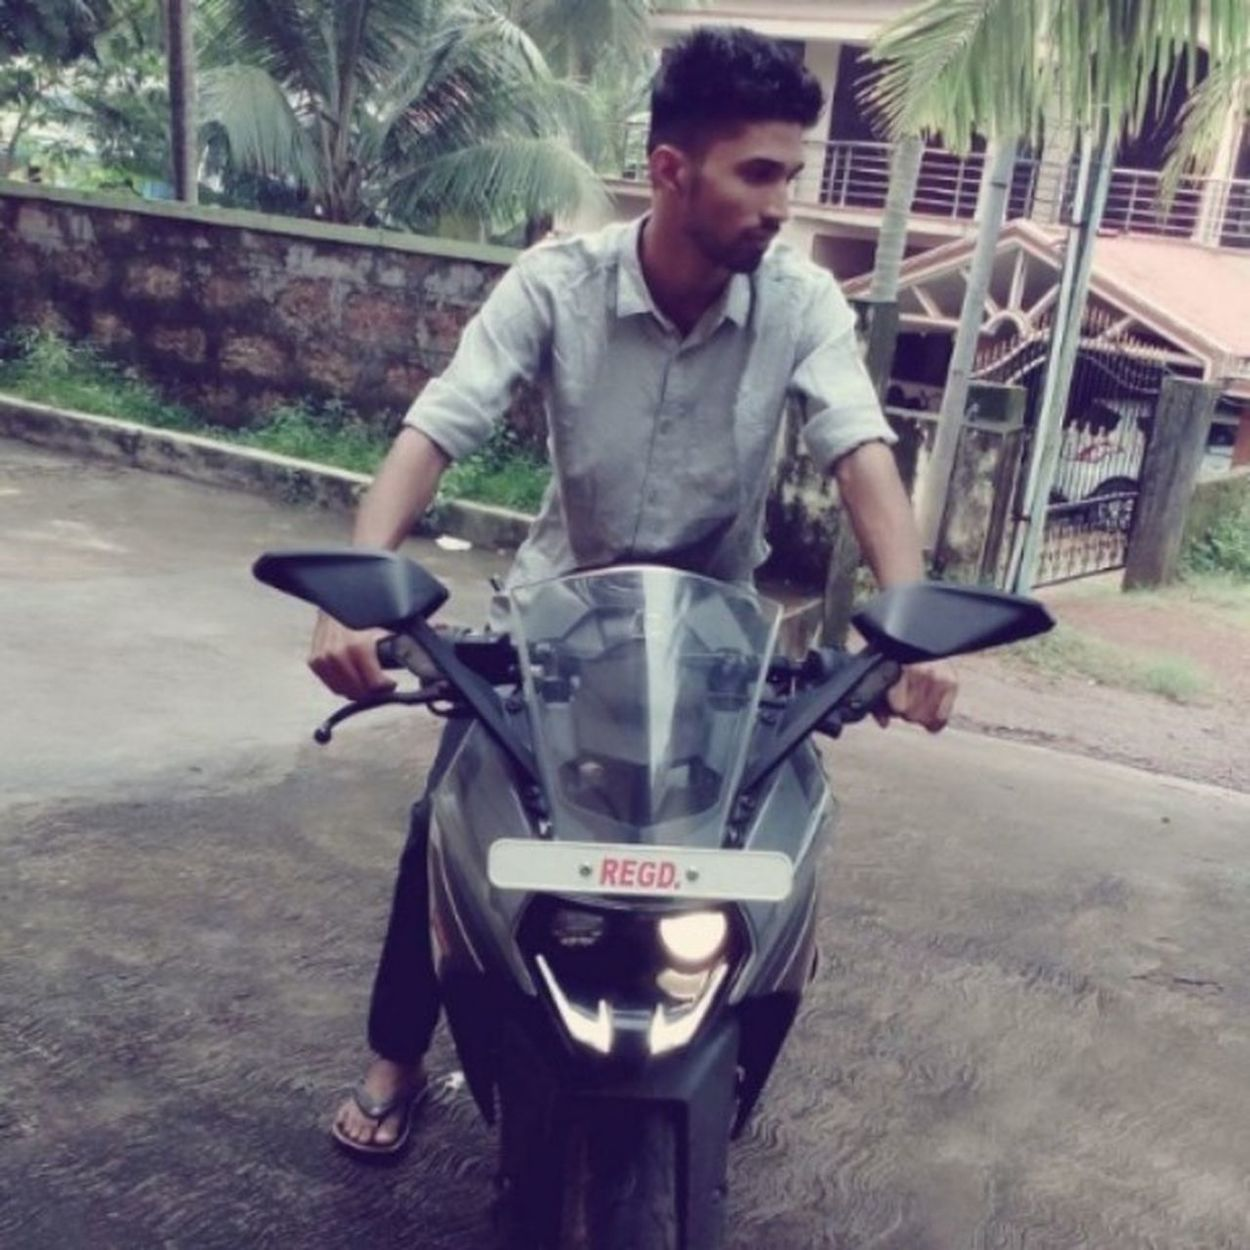 Ktmrc200 Ktm Lovelyride Nopose EidDay Lovelyweather  Okbye